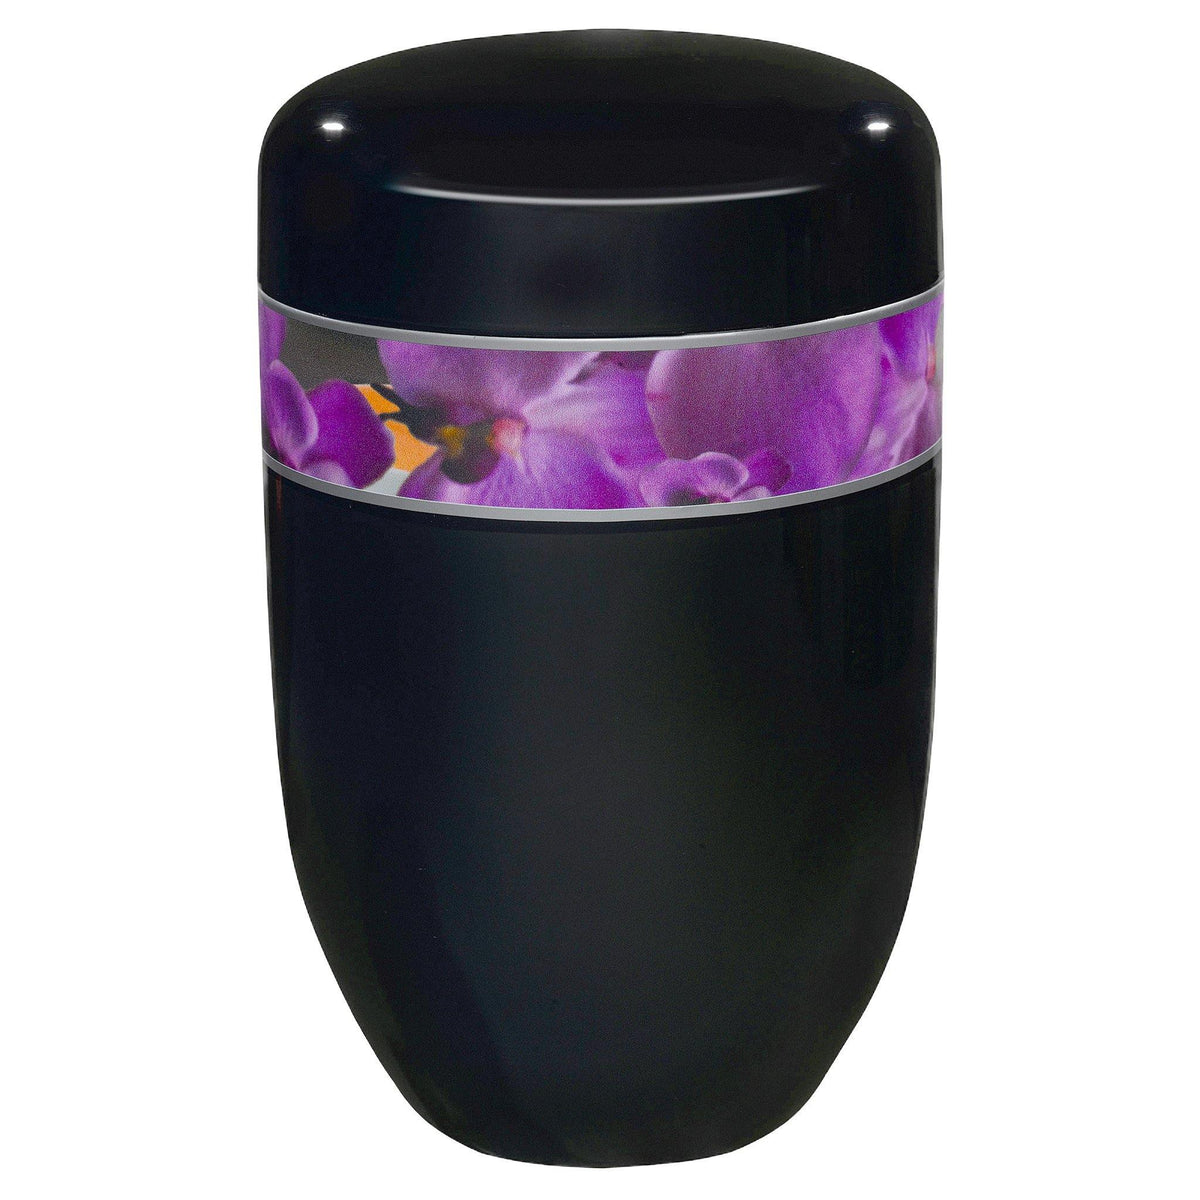 Poynton Black Orchid Cremation Ashes Urn - Urns UK